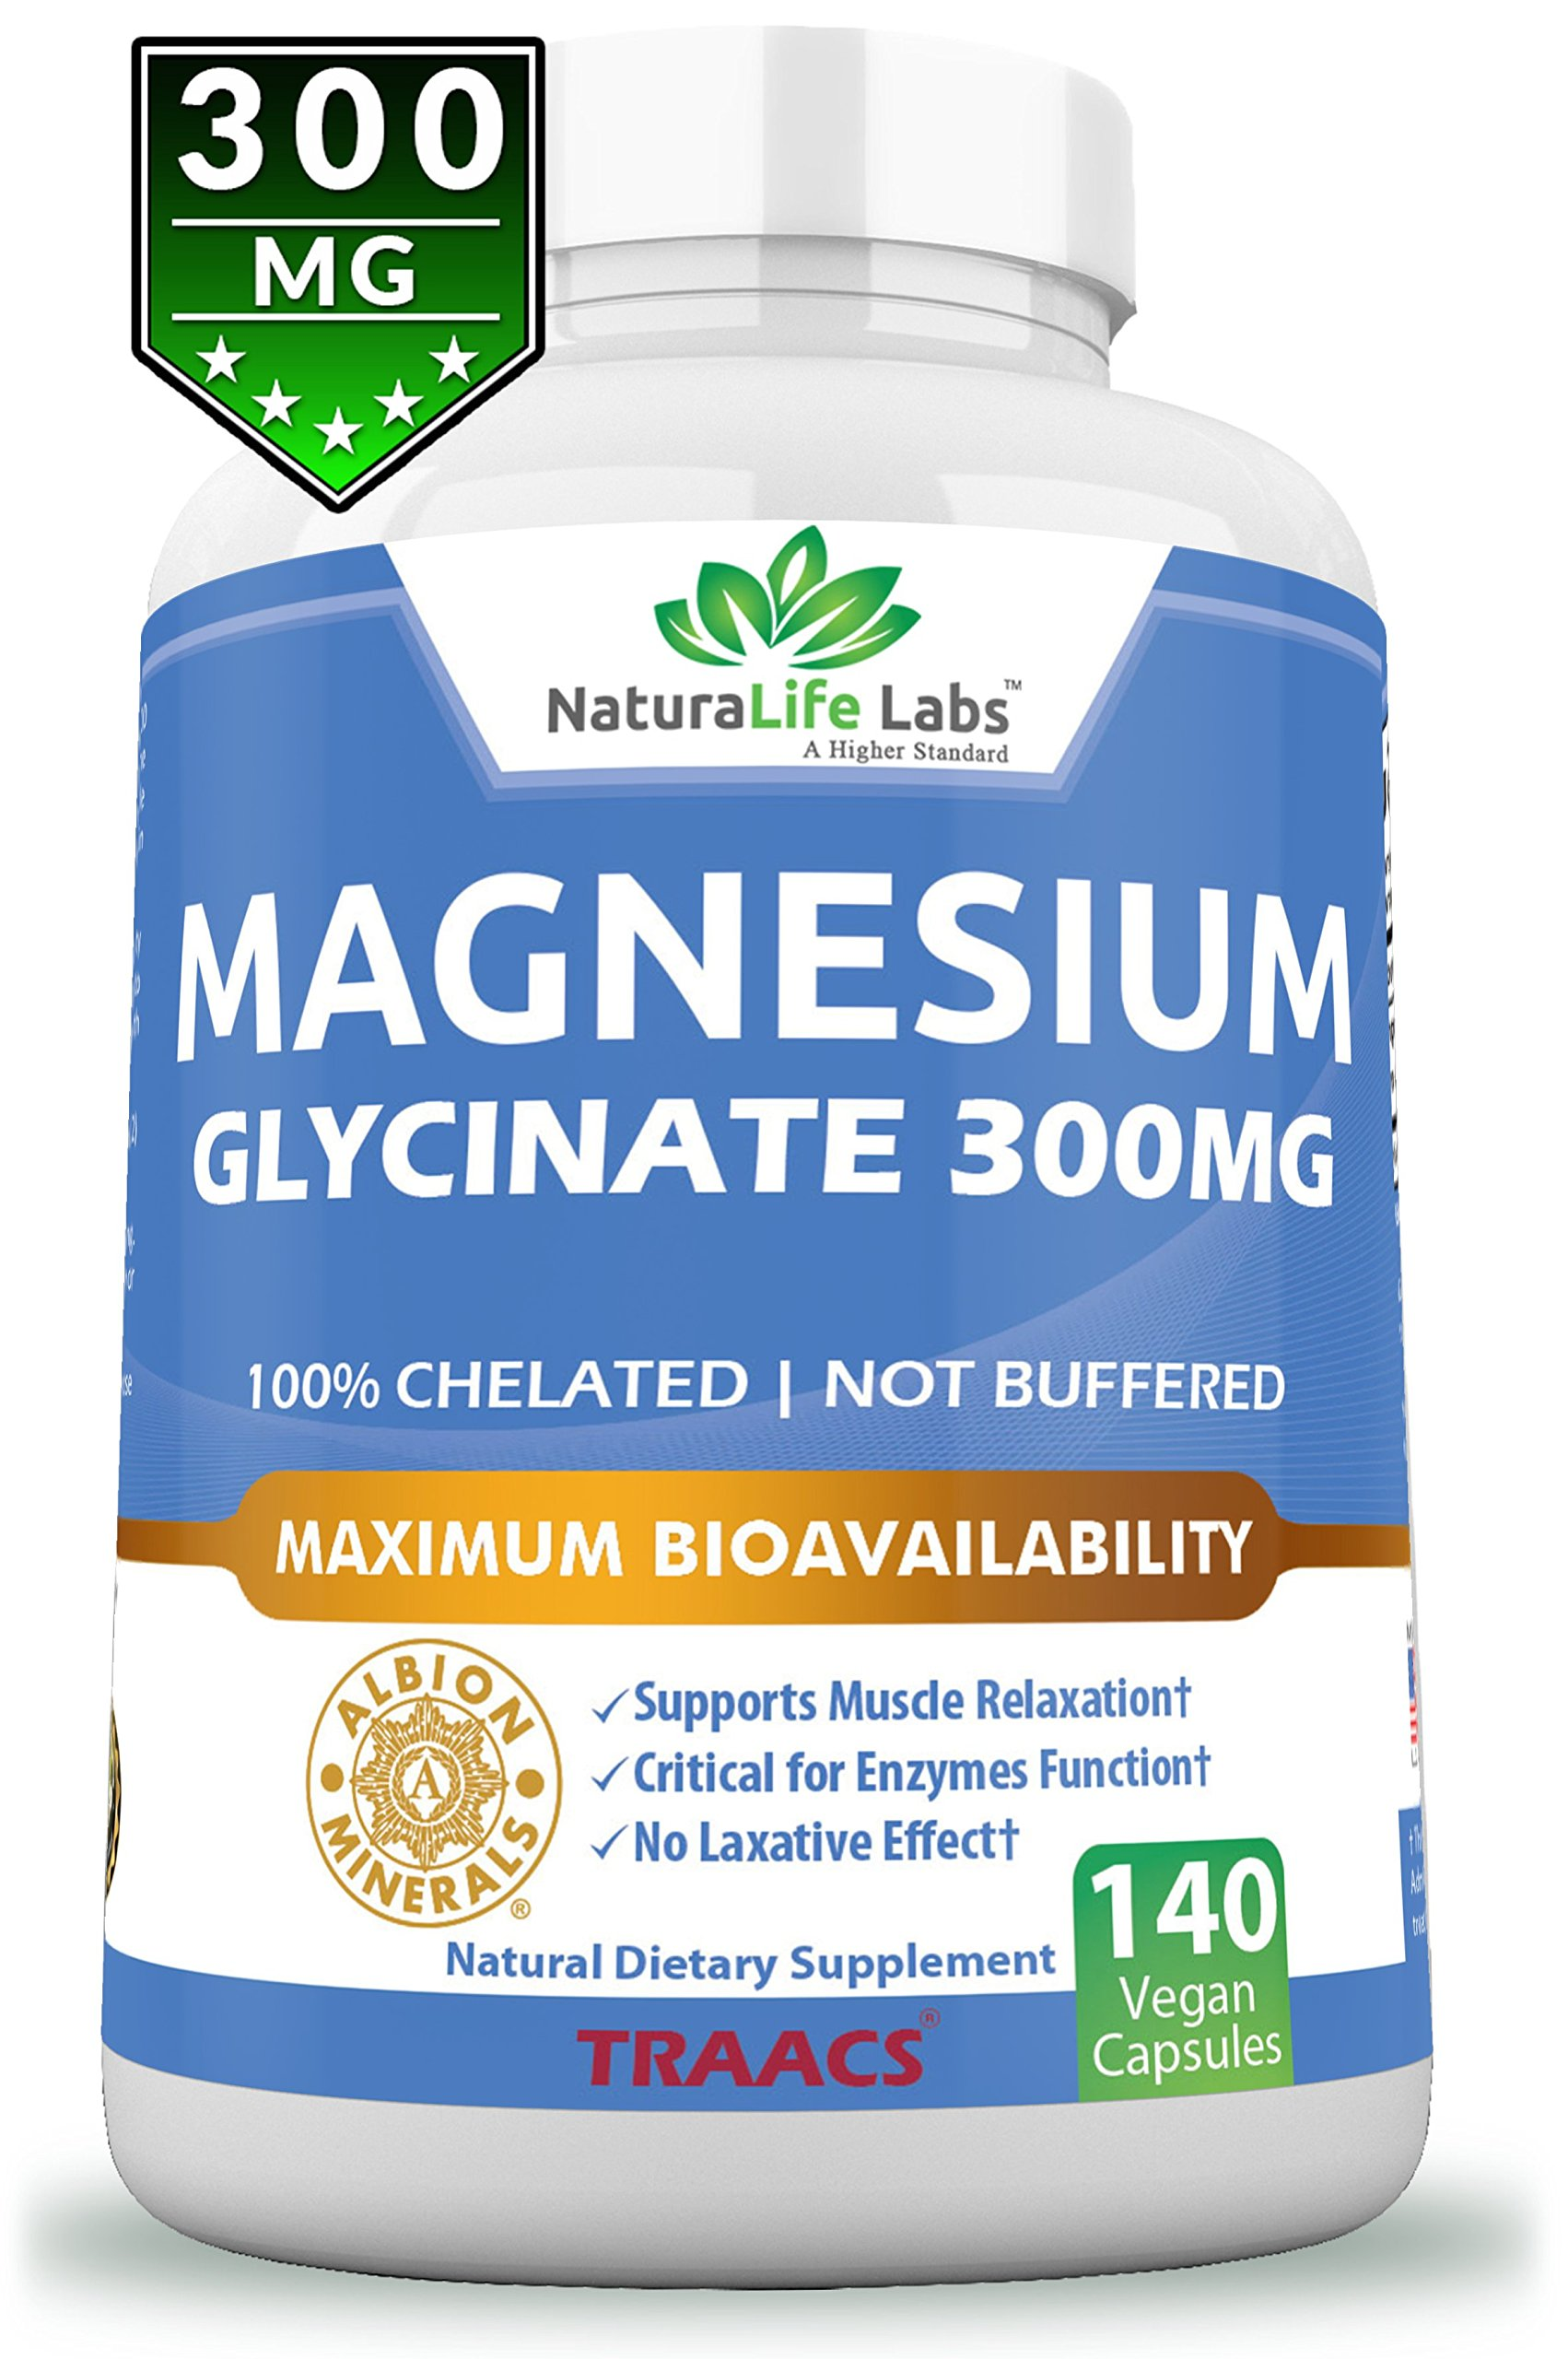 Magnesium Glycinate 300mg 140 Vegan capsules Maximum Bioavailability Chelate Not Buffered No laxative effect Albion TRAACS Vegan Helps Function of muscles, bones, heart Non-GMO